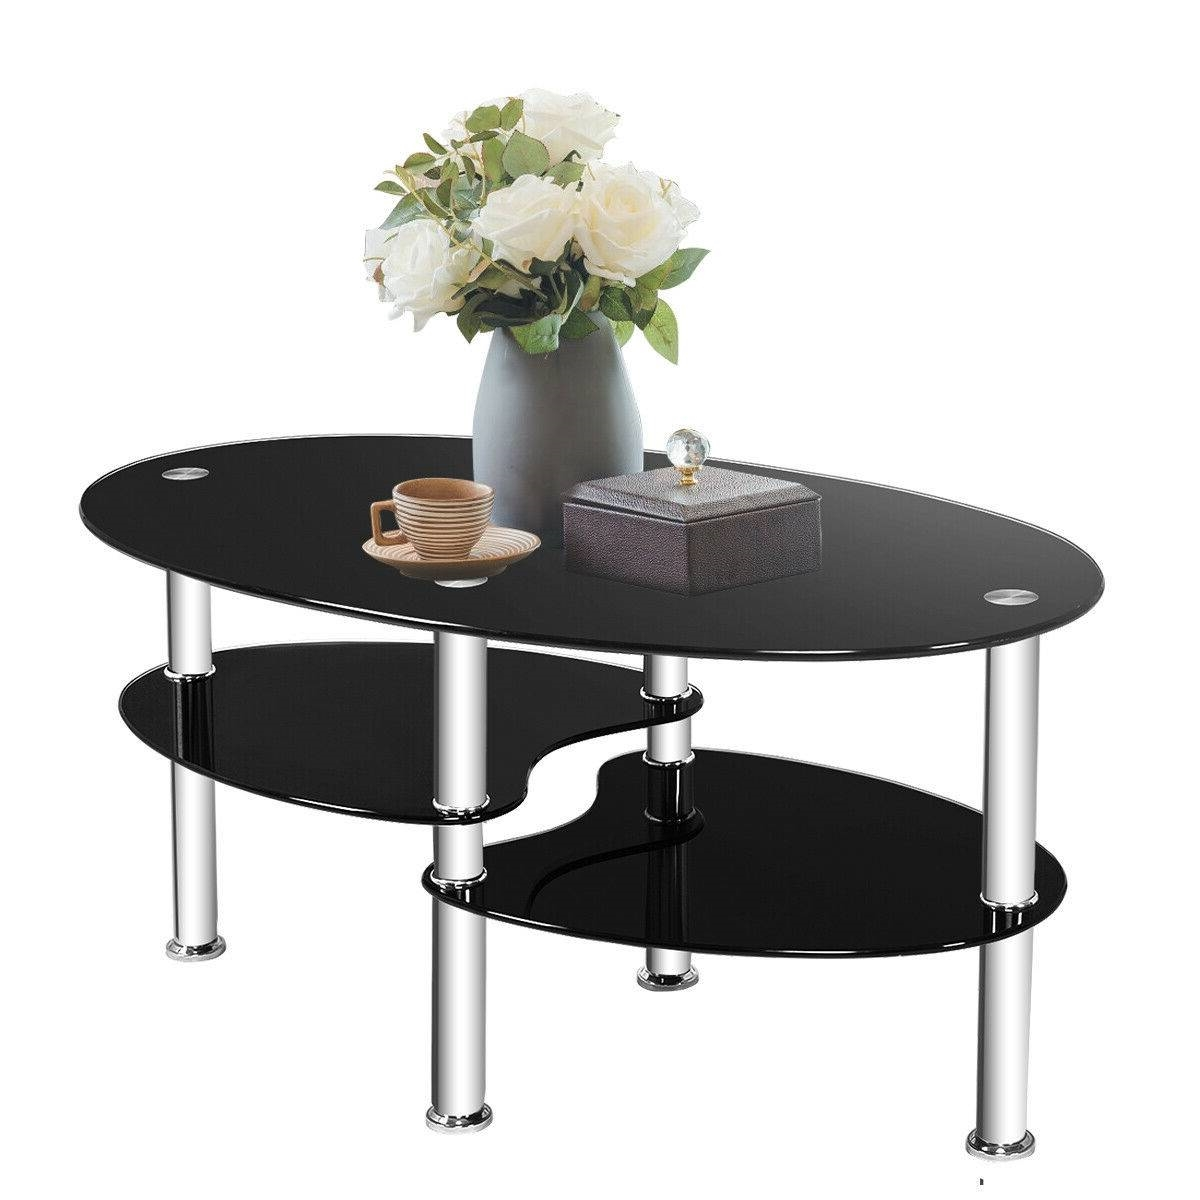 - Modern Black Tempered Glass Coffee Table With Bottom Shelf